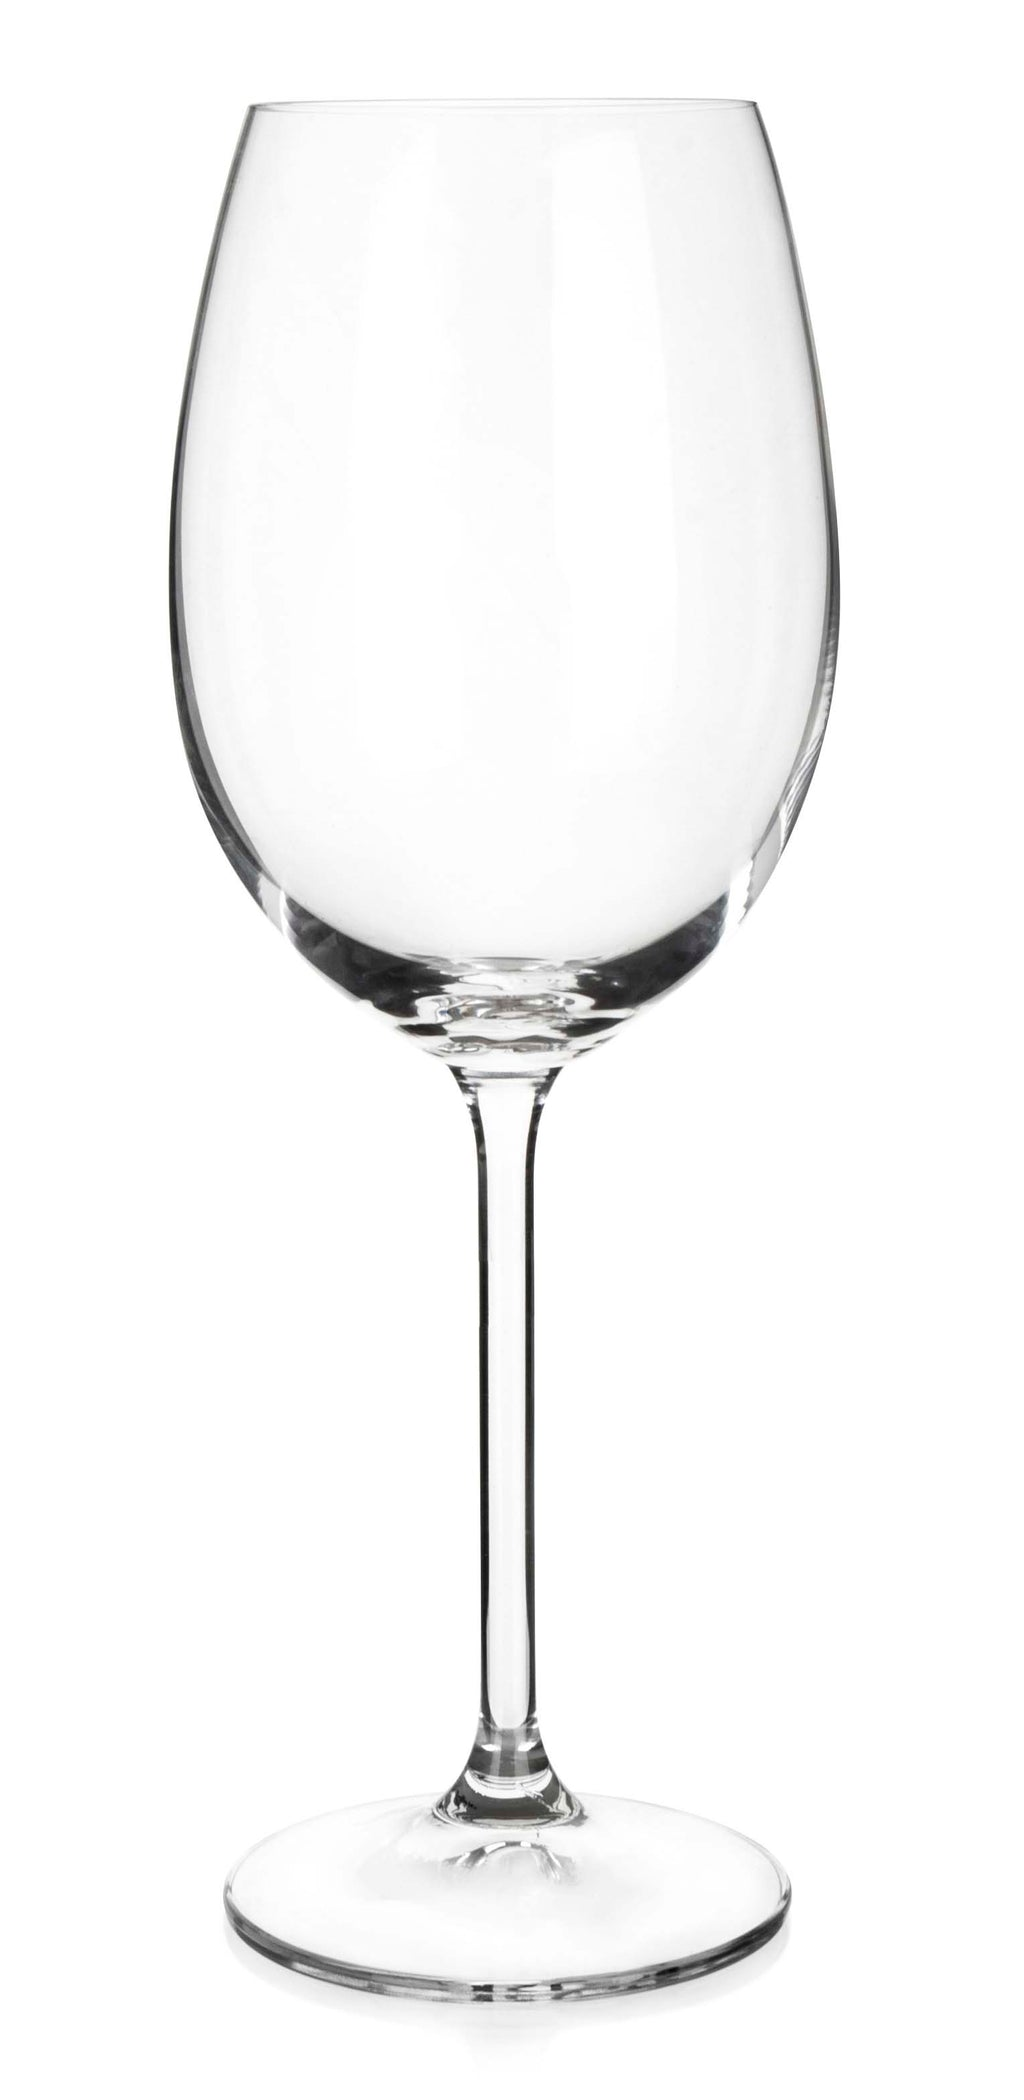 Maison Forine - Veronica Red Wine,Wine Glass,Maison Forine Crystal By Bohemia